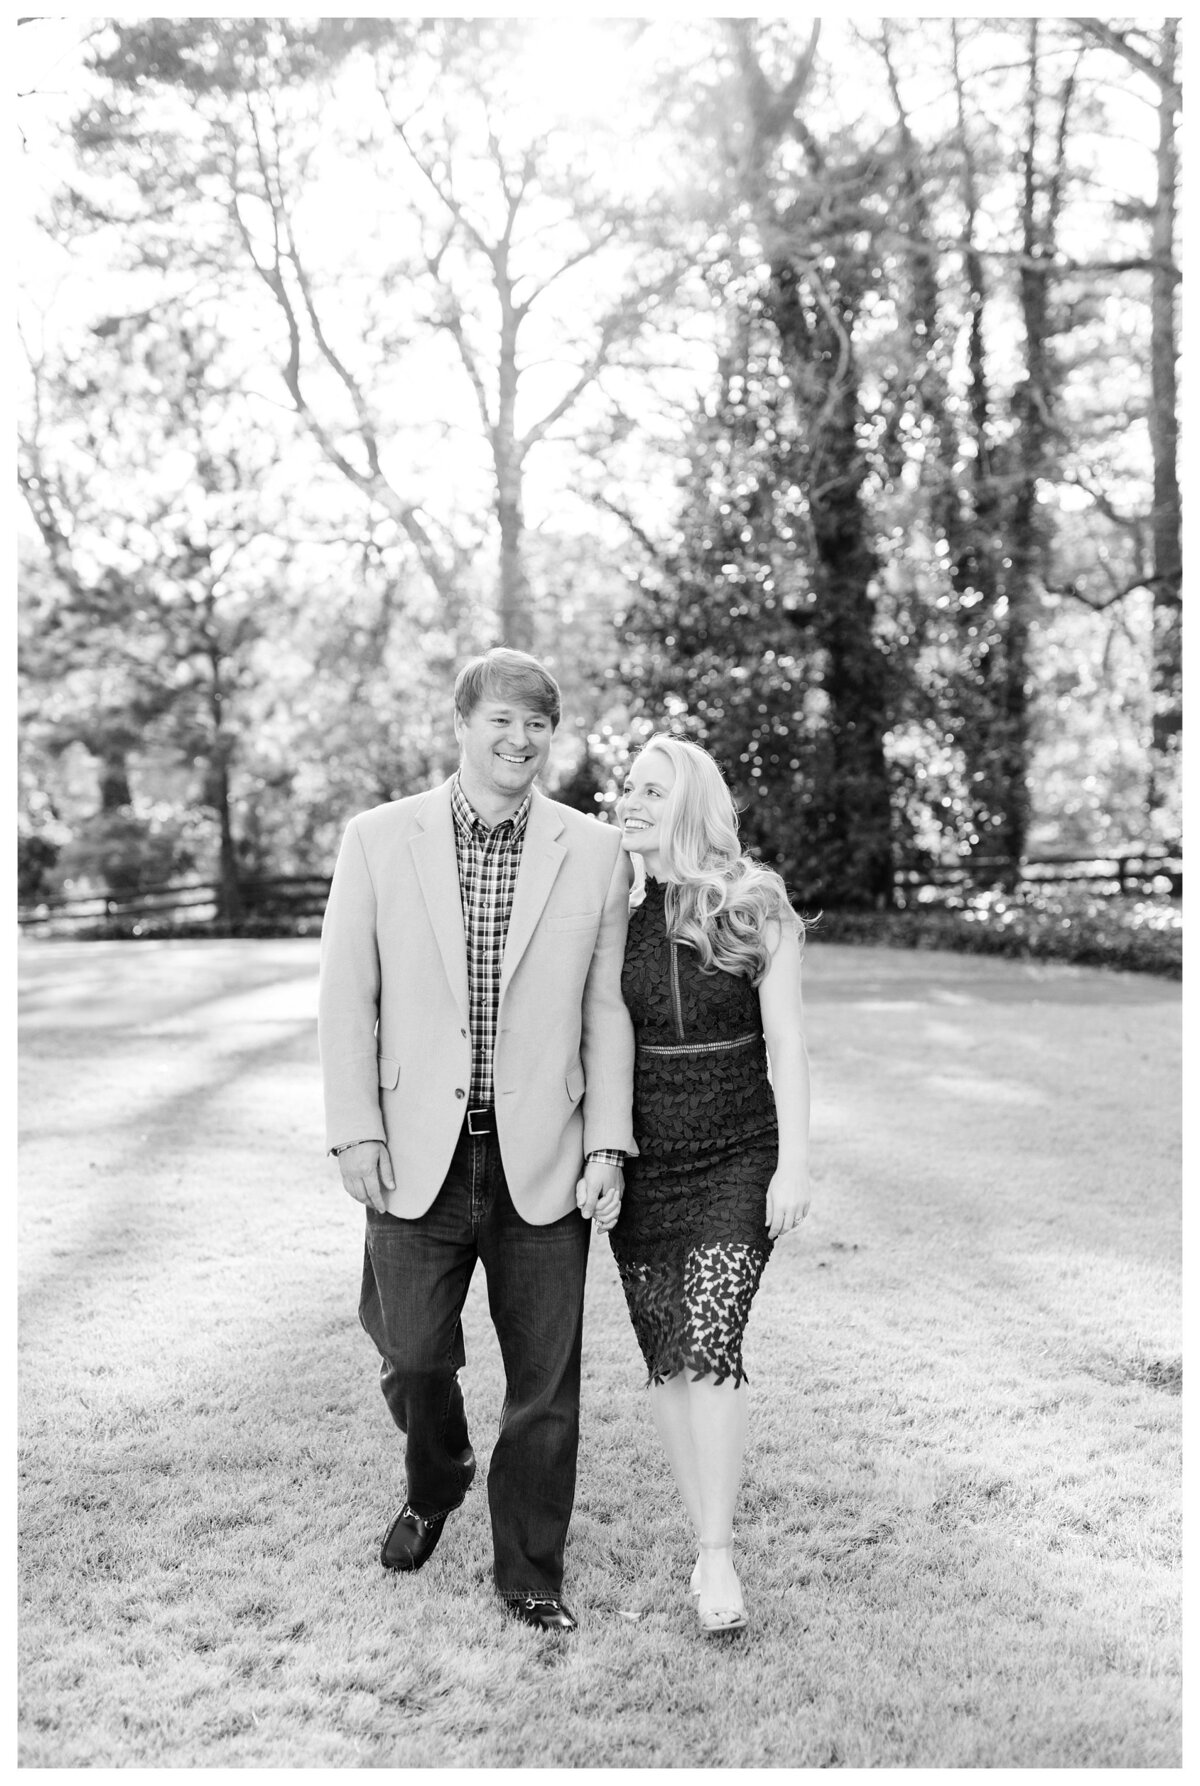 canady-engagements-atlanta-wedding-photographer-08